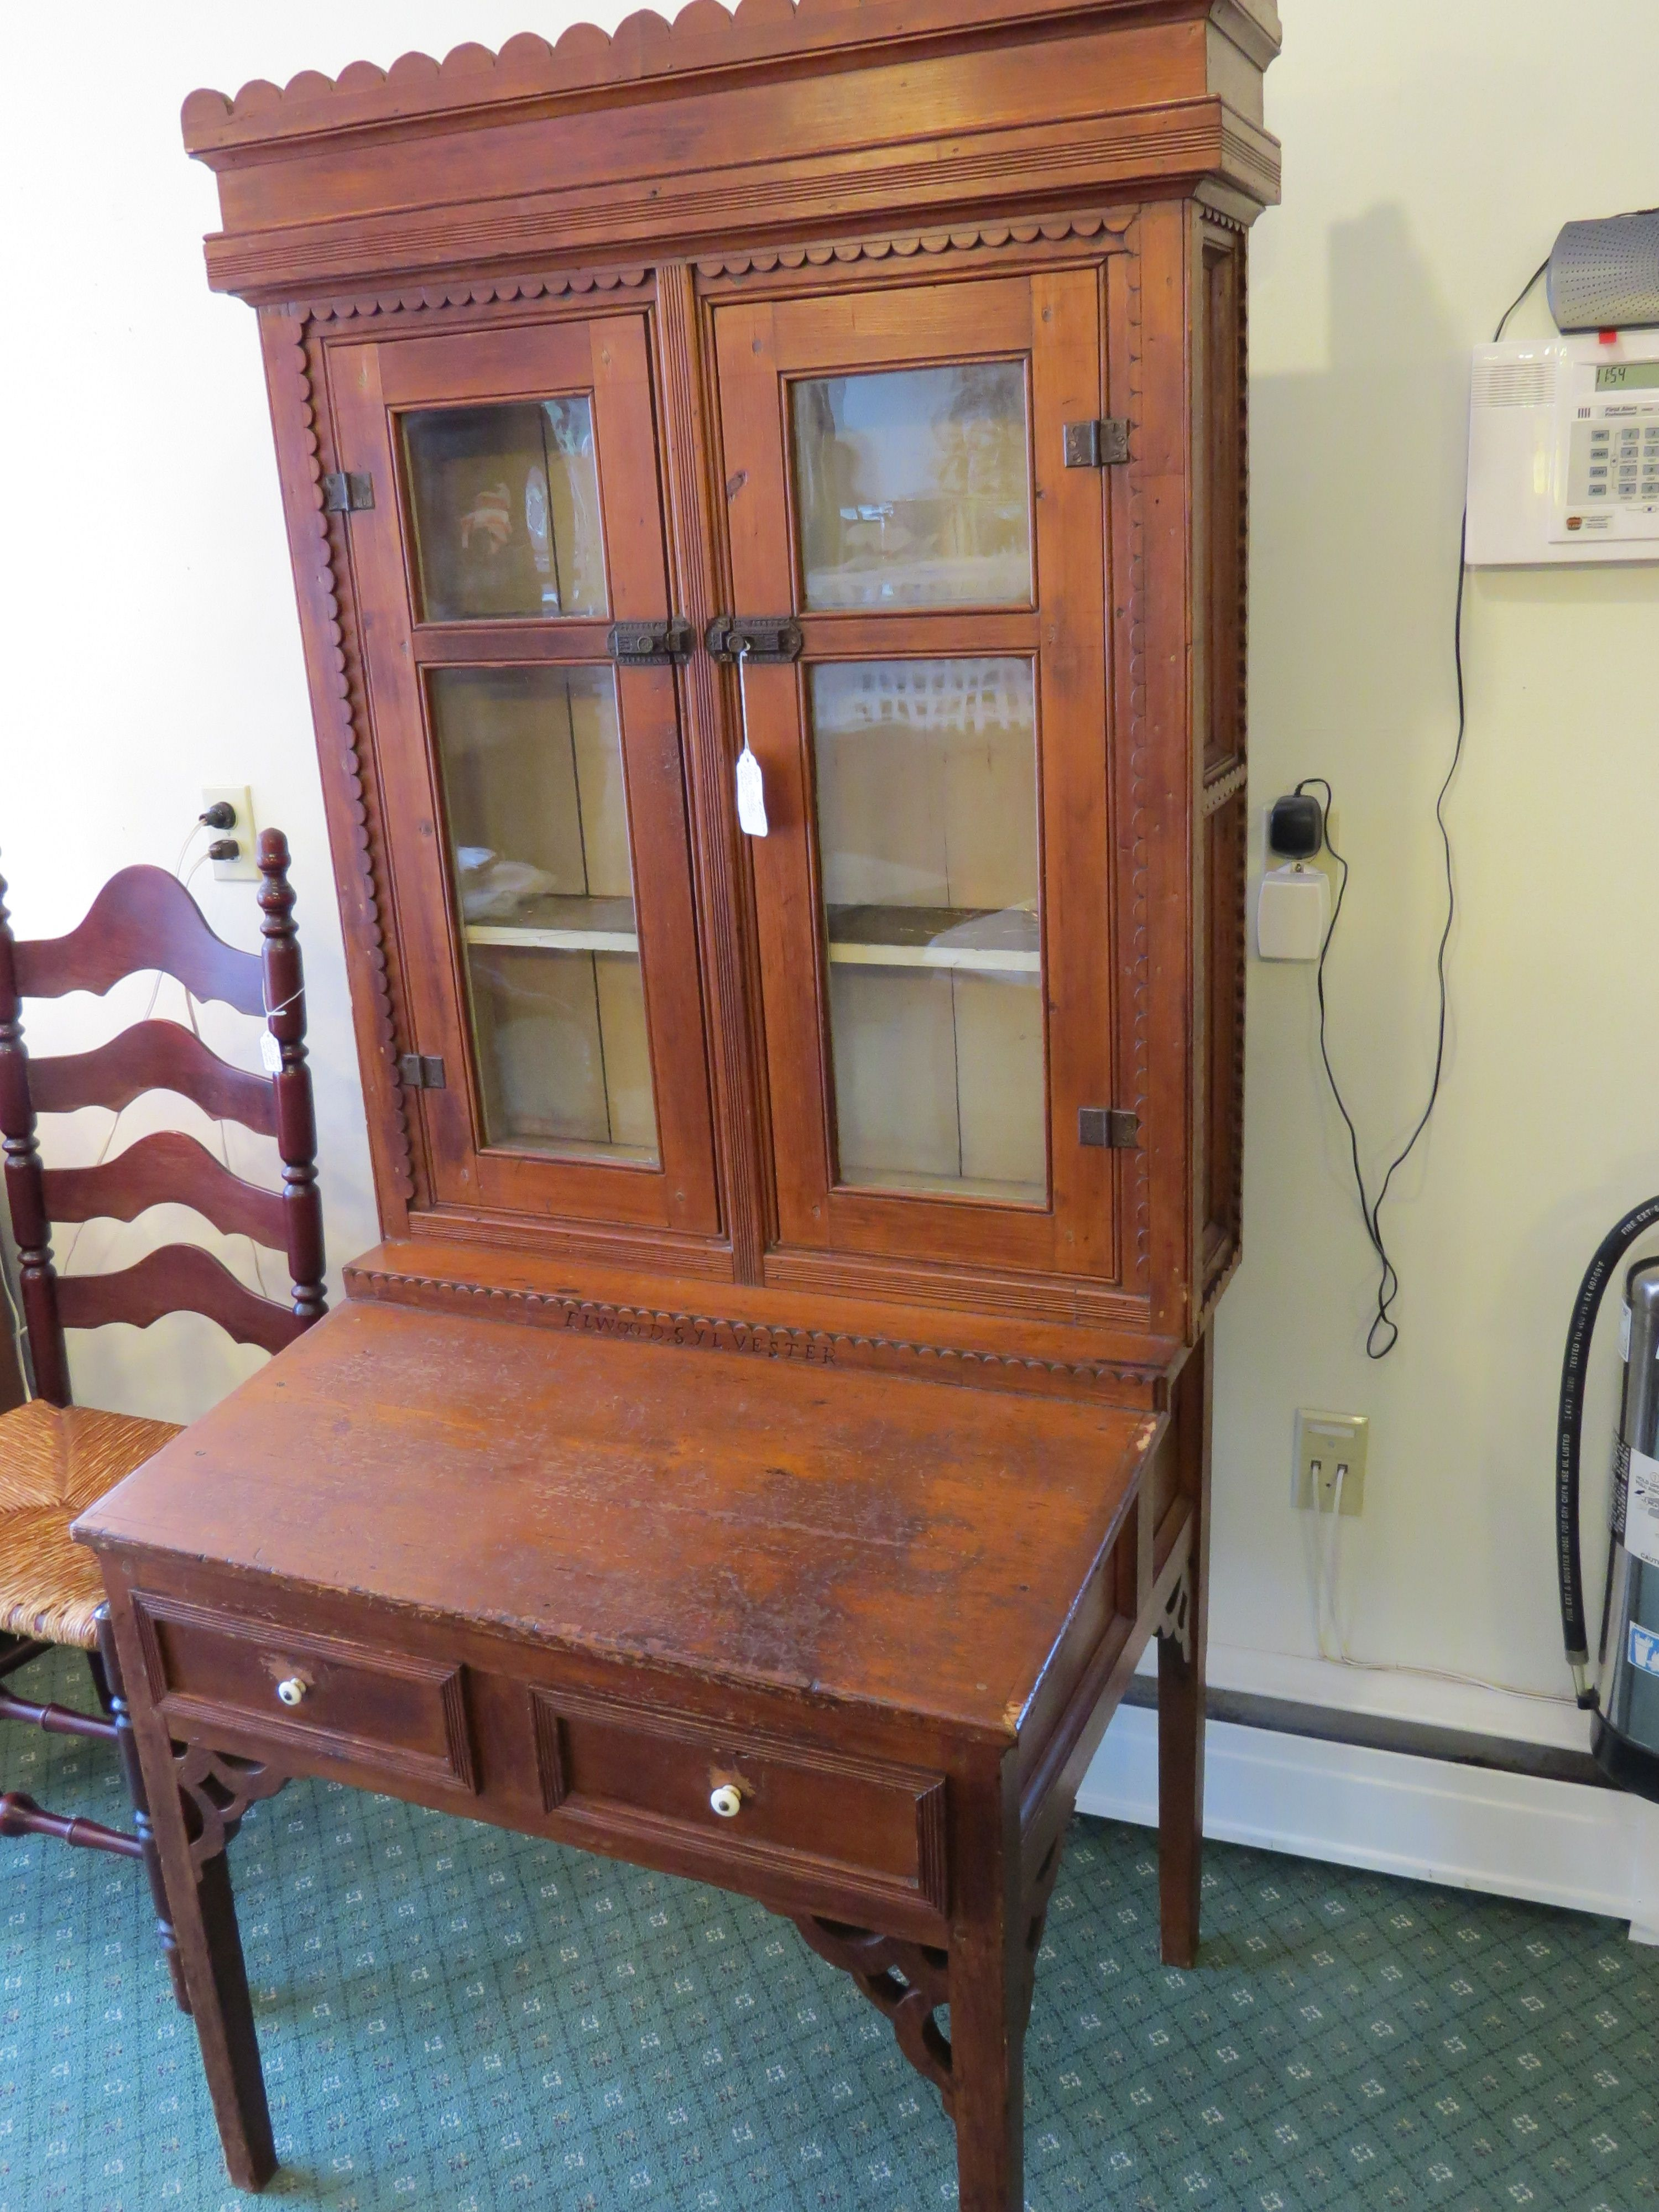 Early Plantation Desk with Original Pulls and Hinges | PLANTATION ...